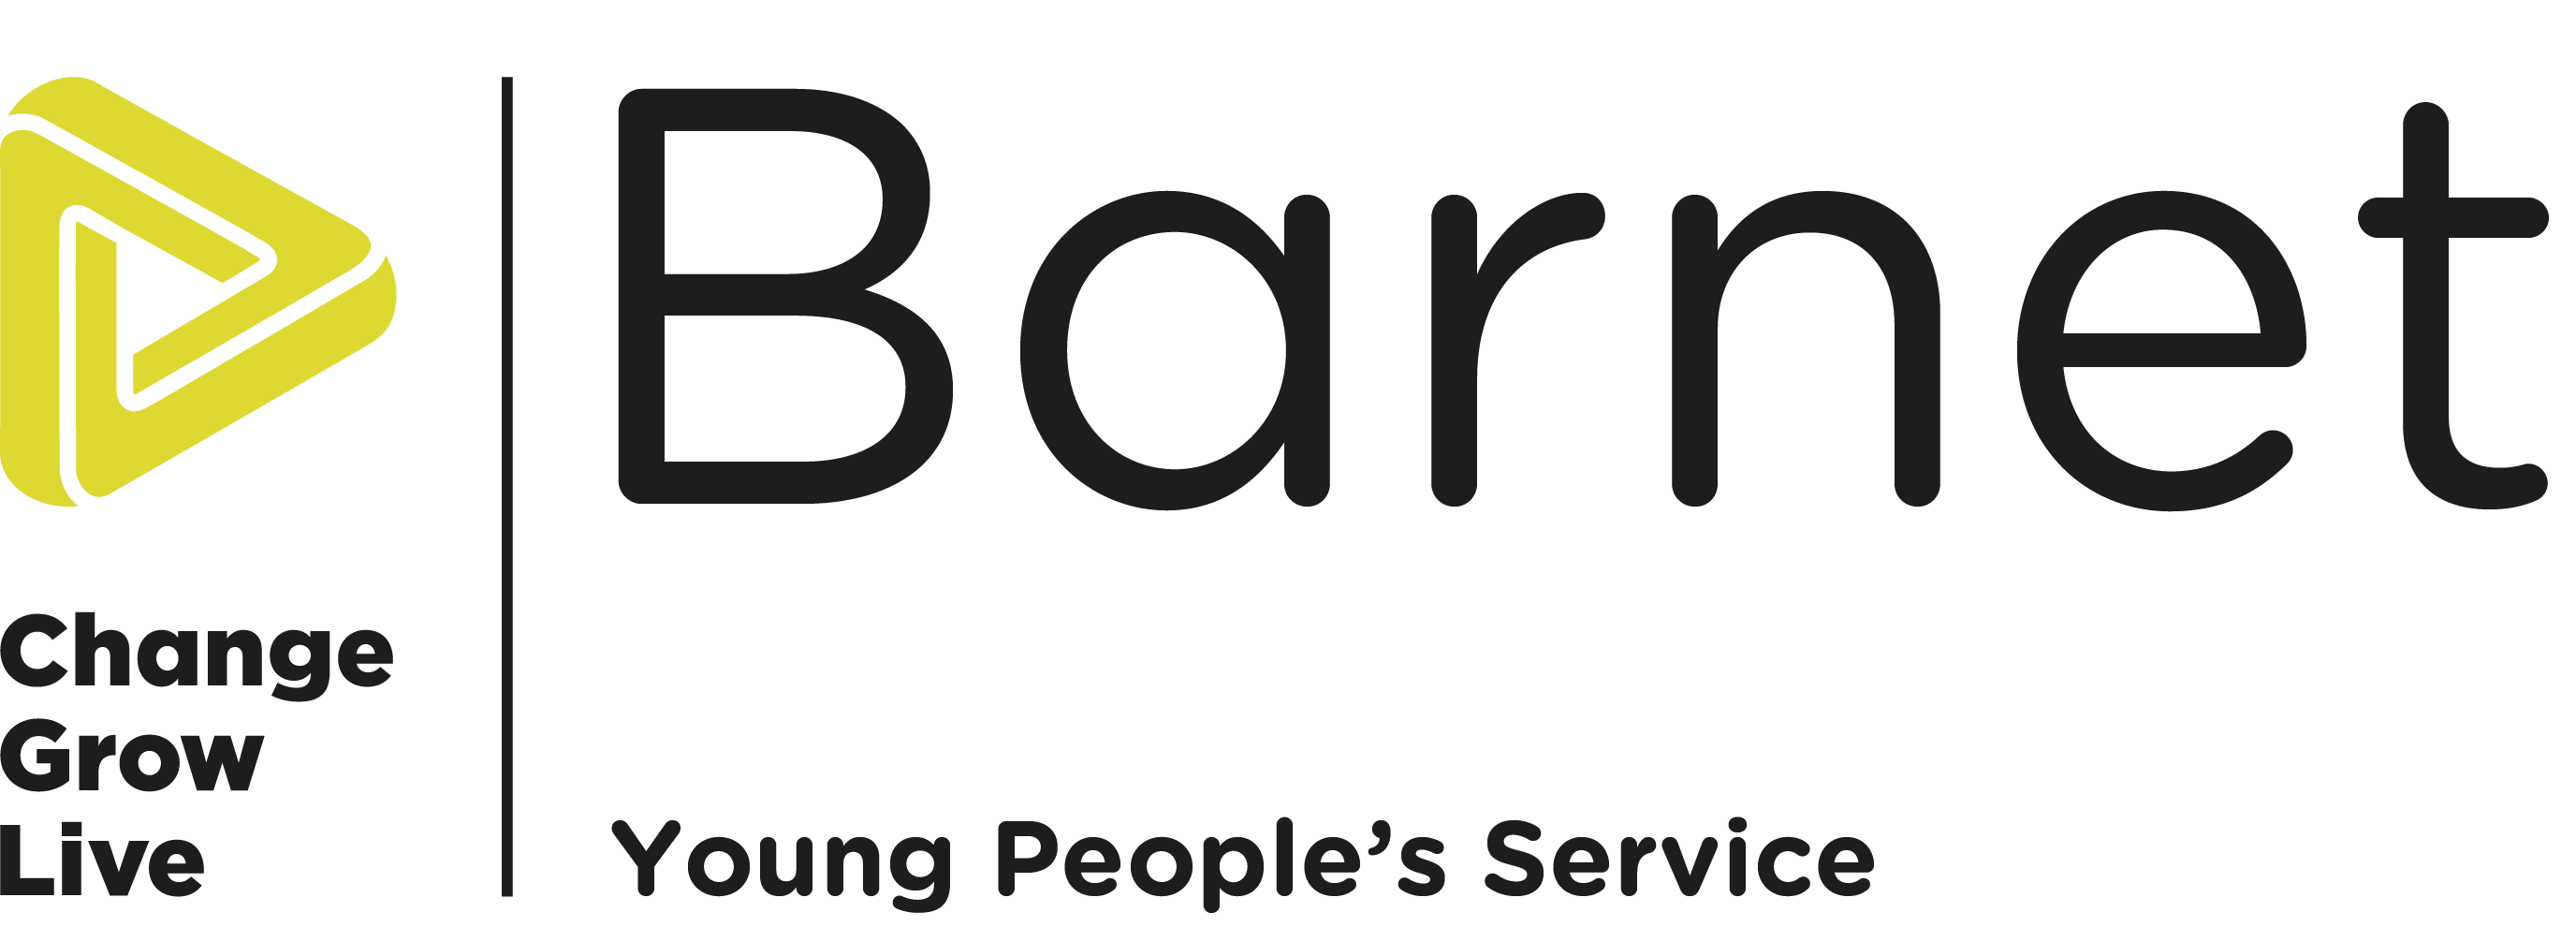 The Barnet young people's service logo in colour